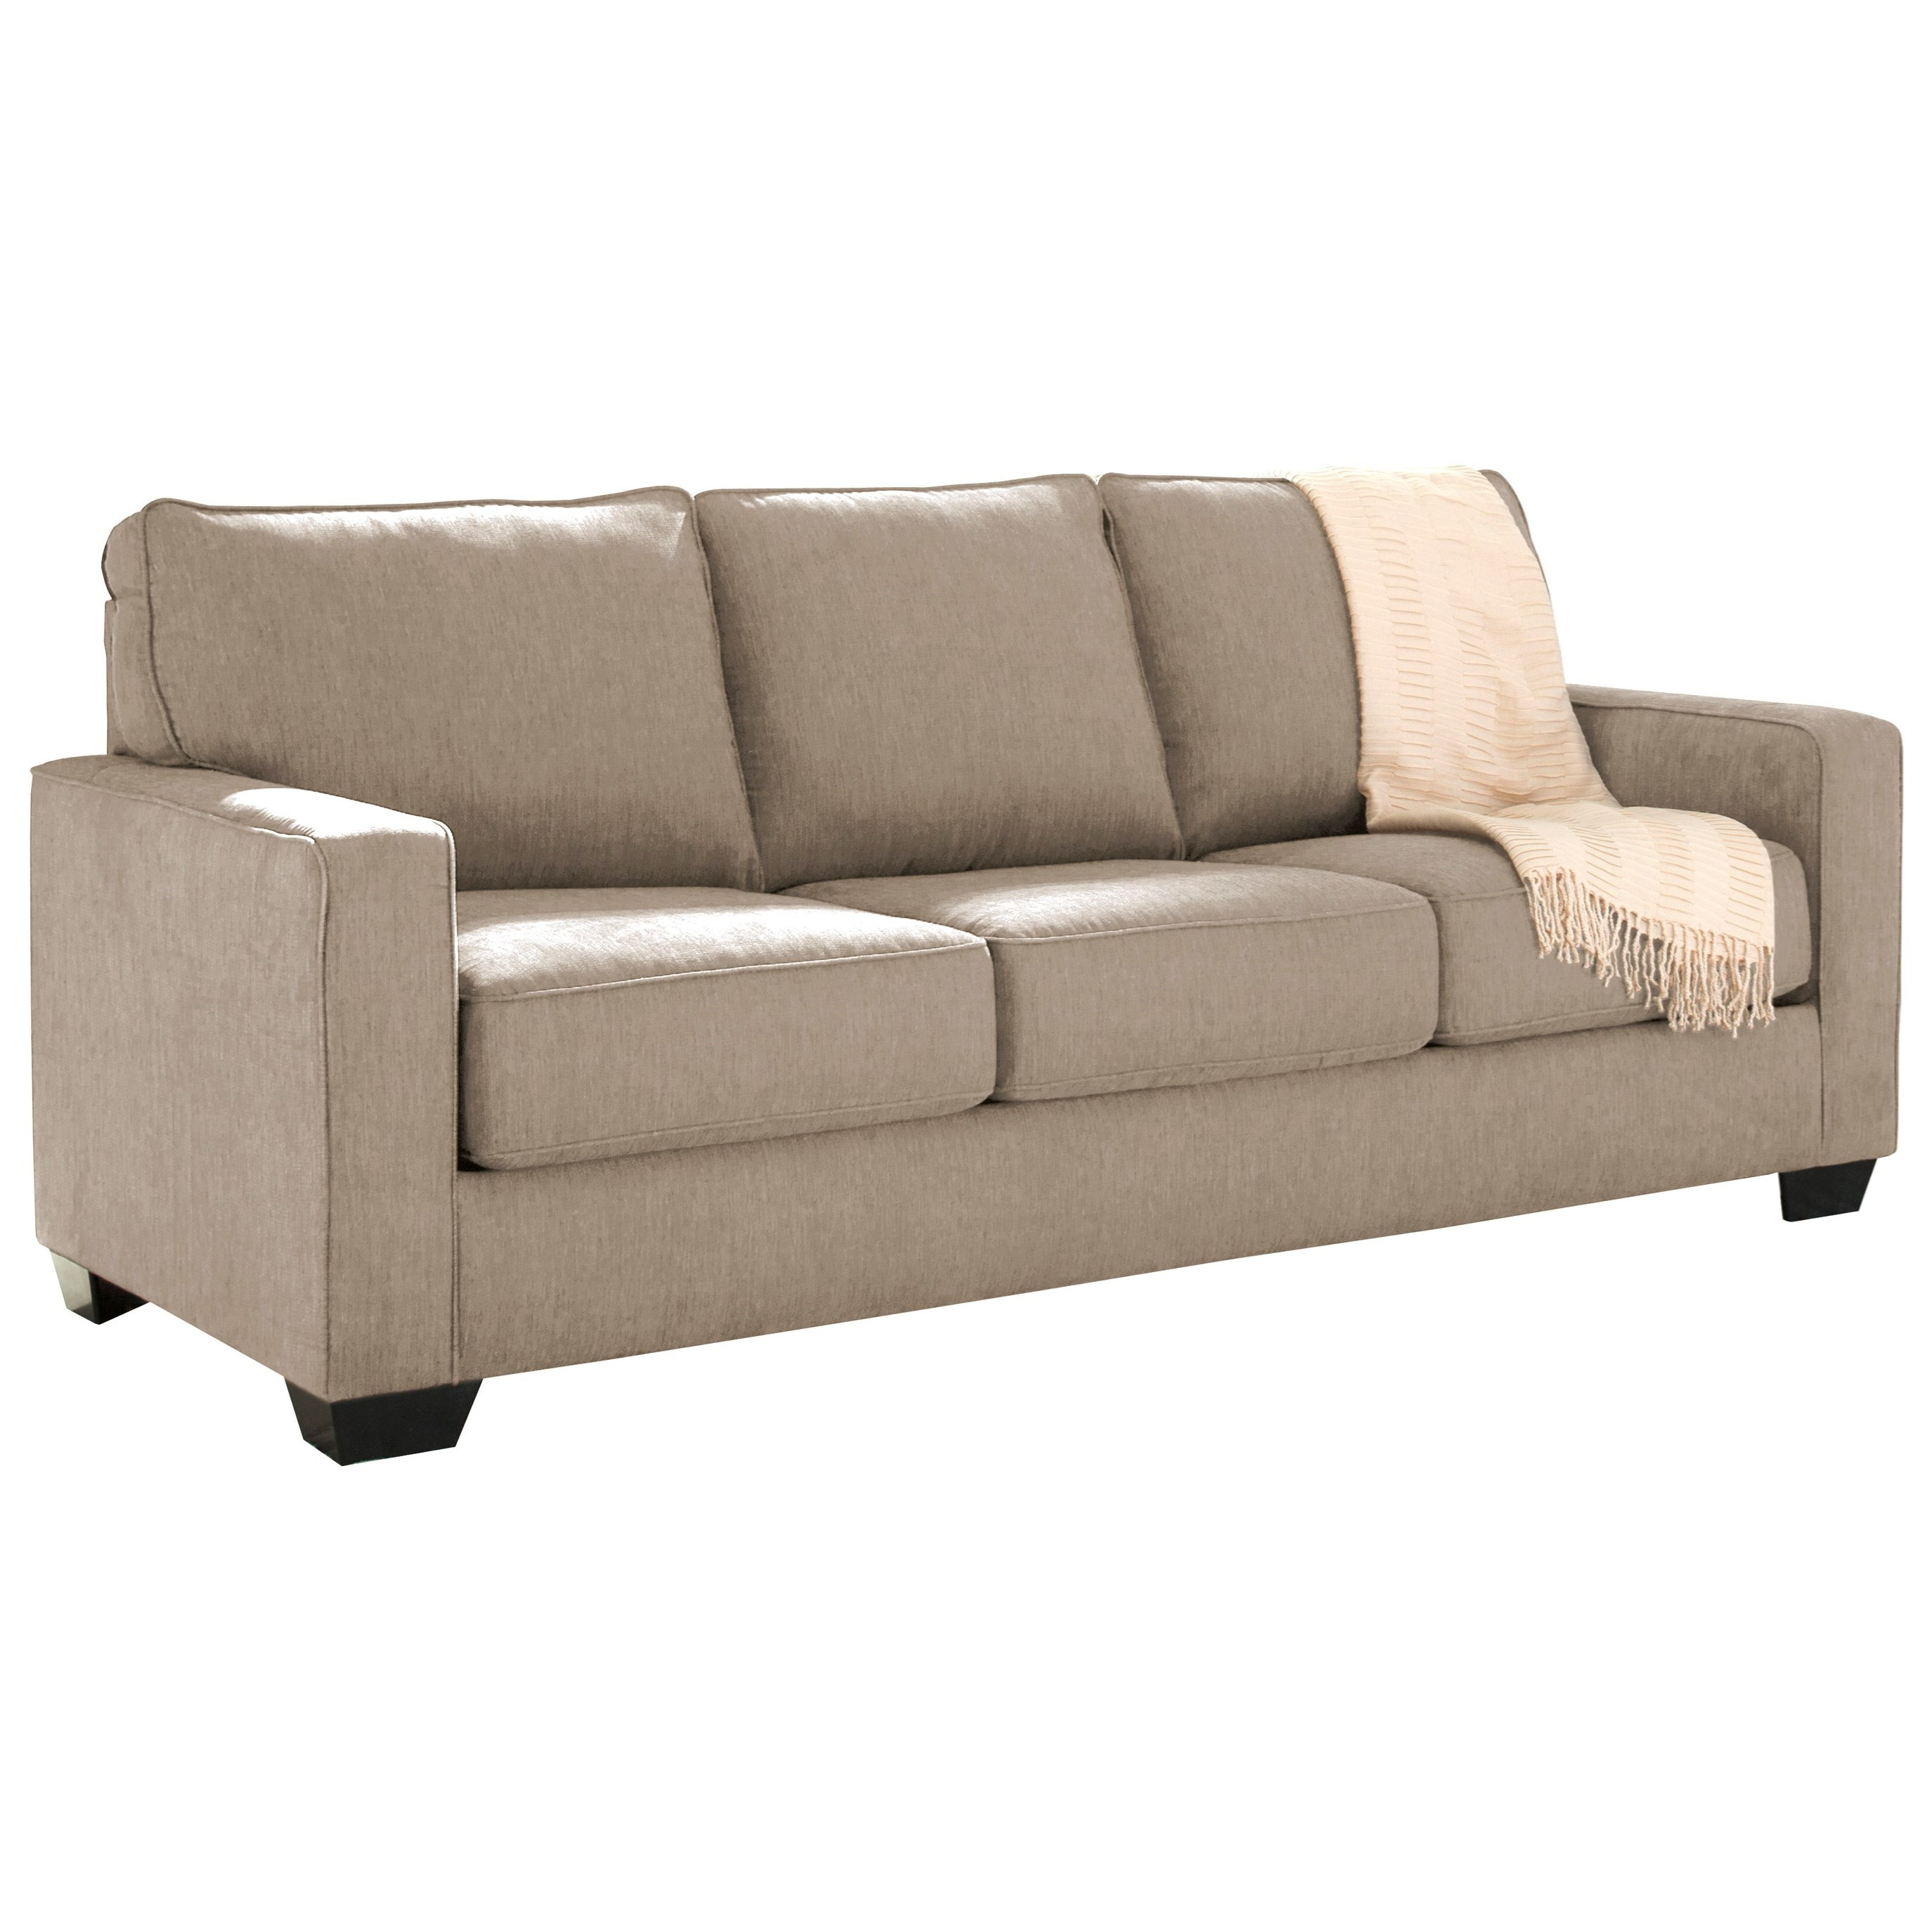 Signature Design By Ashley Zeb Queen Sofa Sleeper With